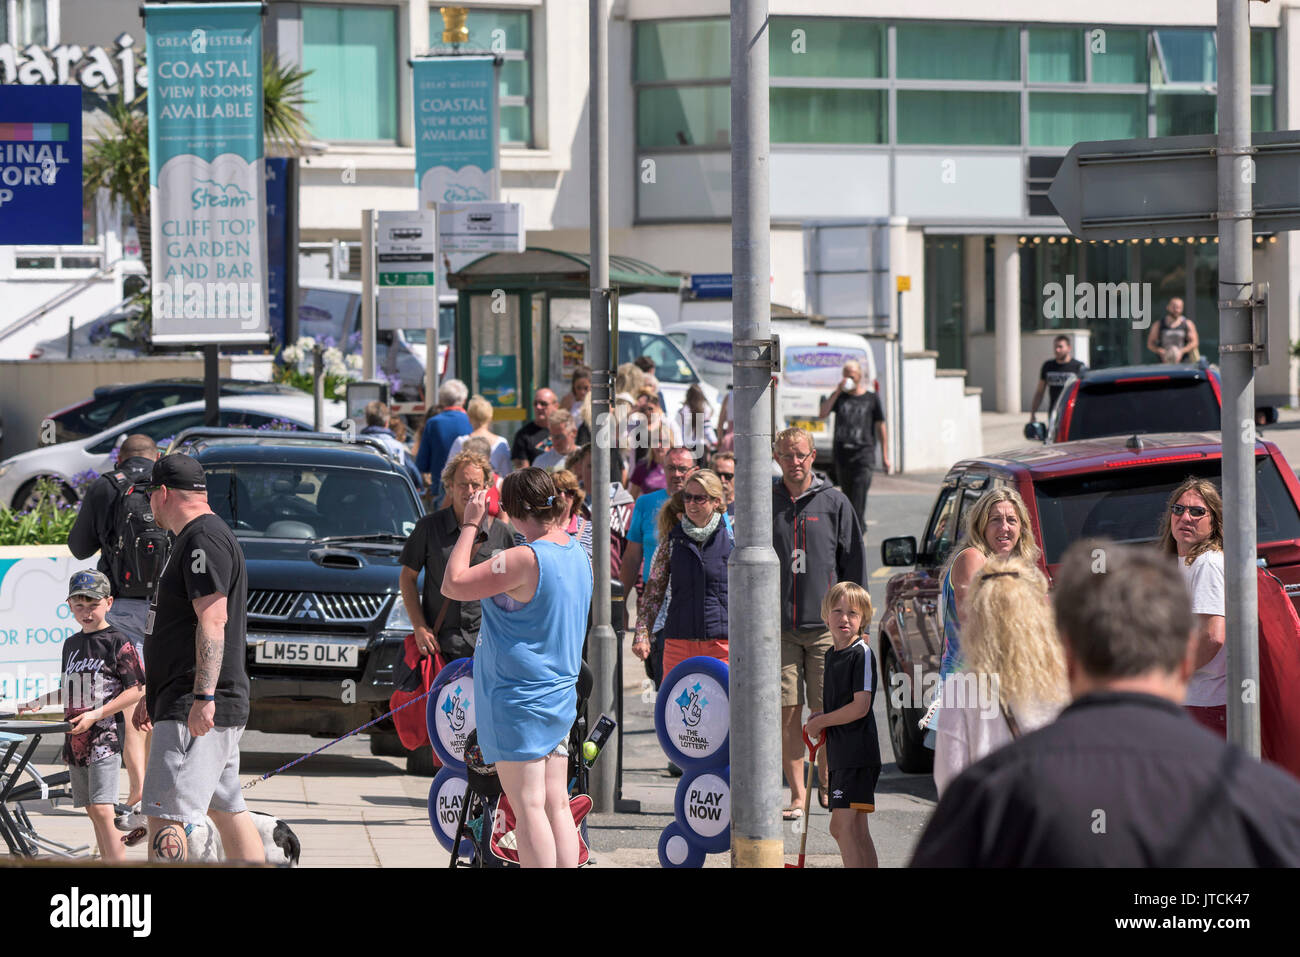 A busy street scene in Newquay, Cornwall. - Stock Image